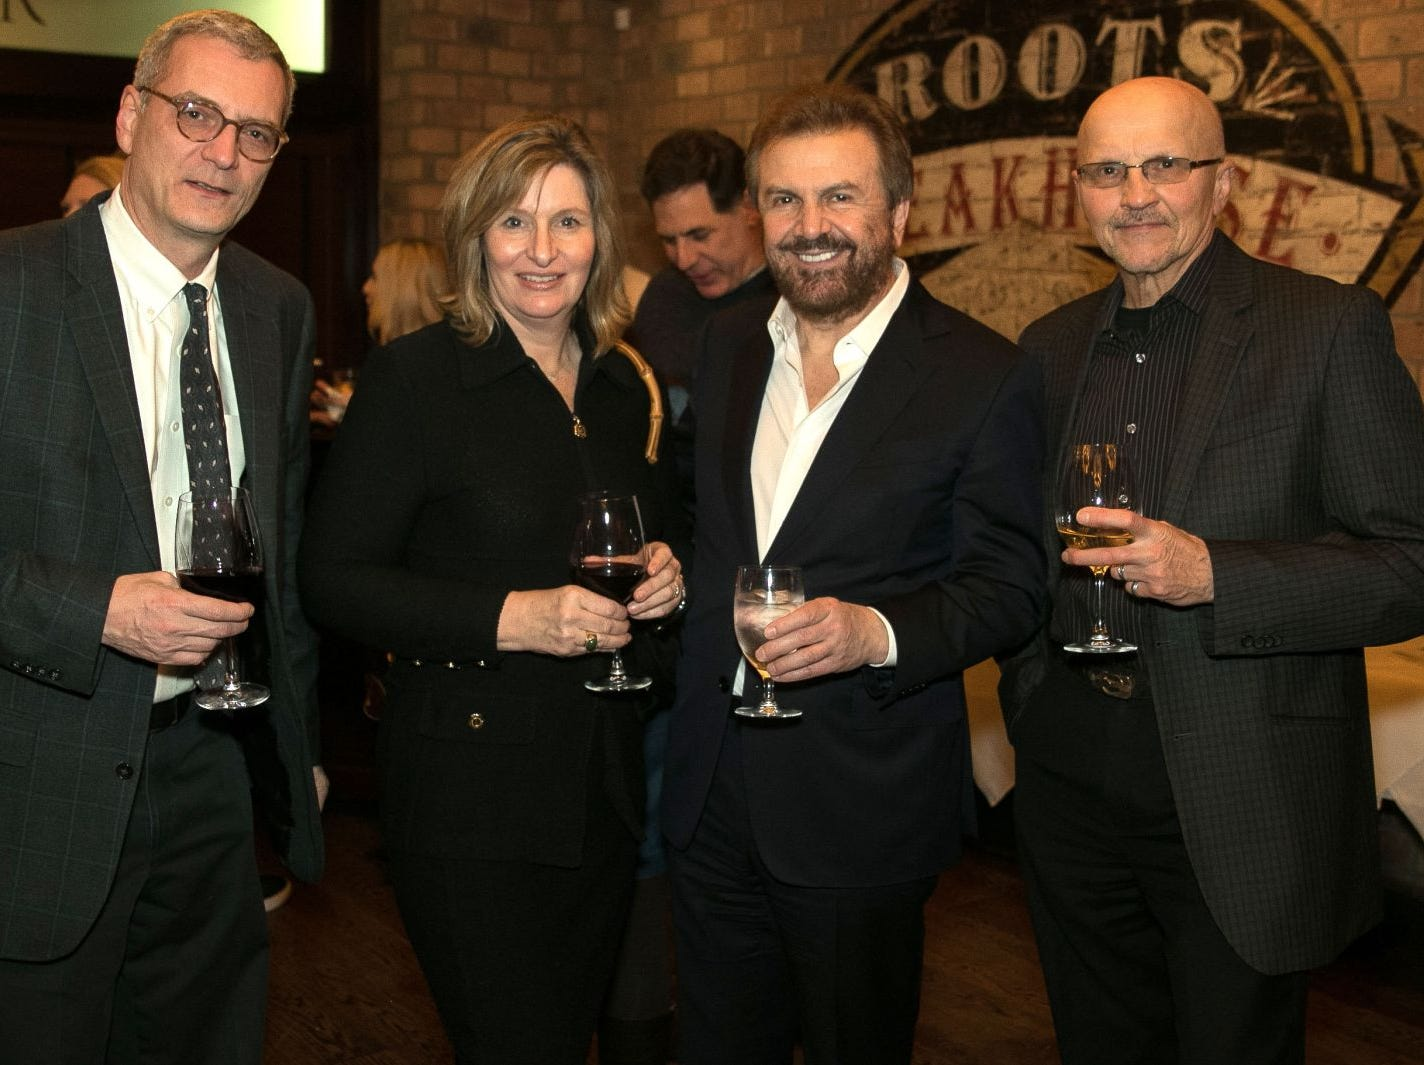 Glenn Garvie, Karen Mikelis, Ilija Pavlovic, James Emolo. Christina Gibbons of Special Properties held a cocktail reception to acknowledge her clients at Roots Steakhouse in Ridgewood. 02/07/2019